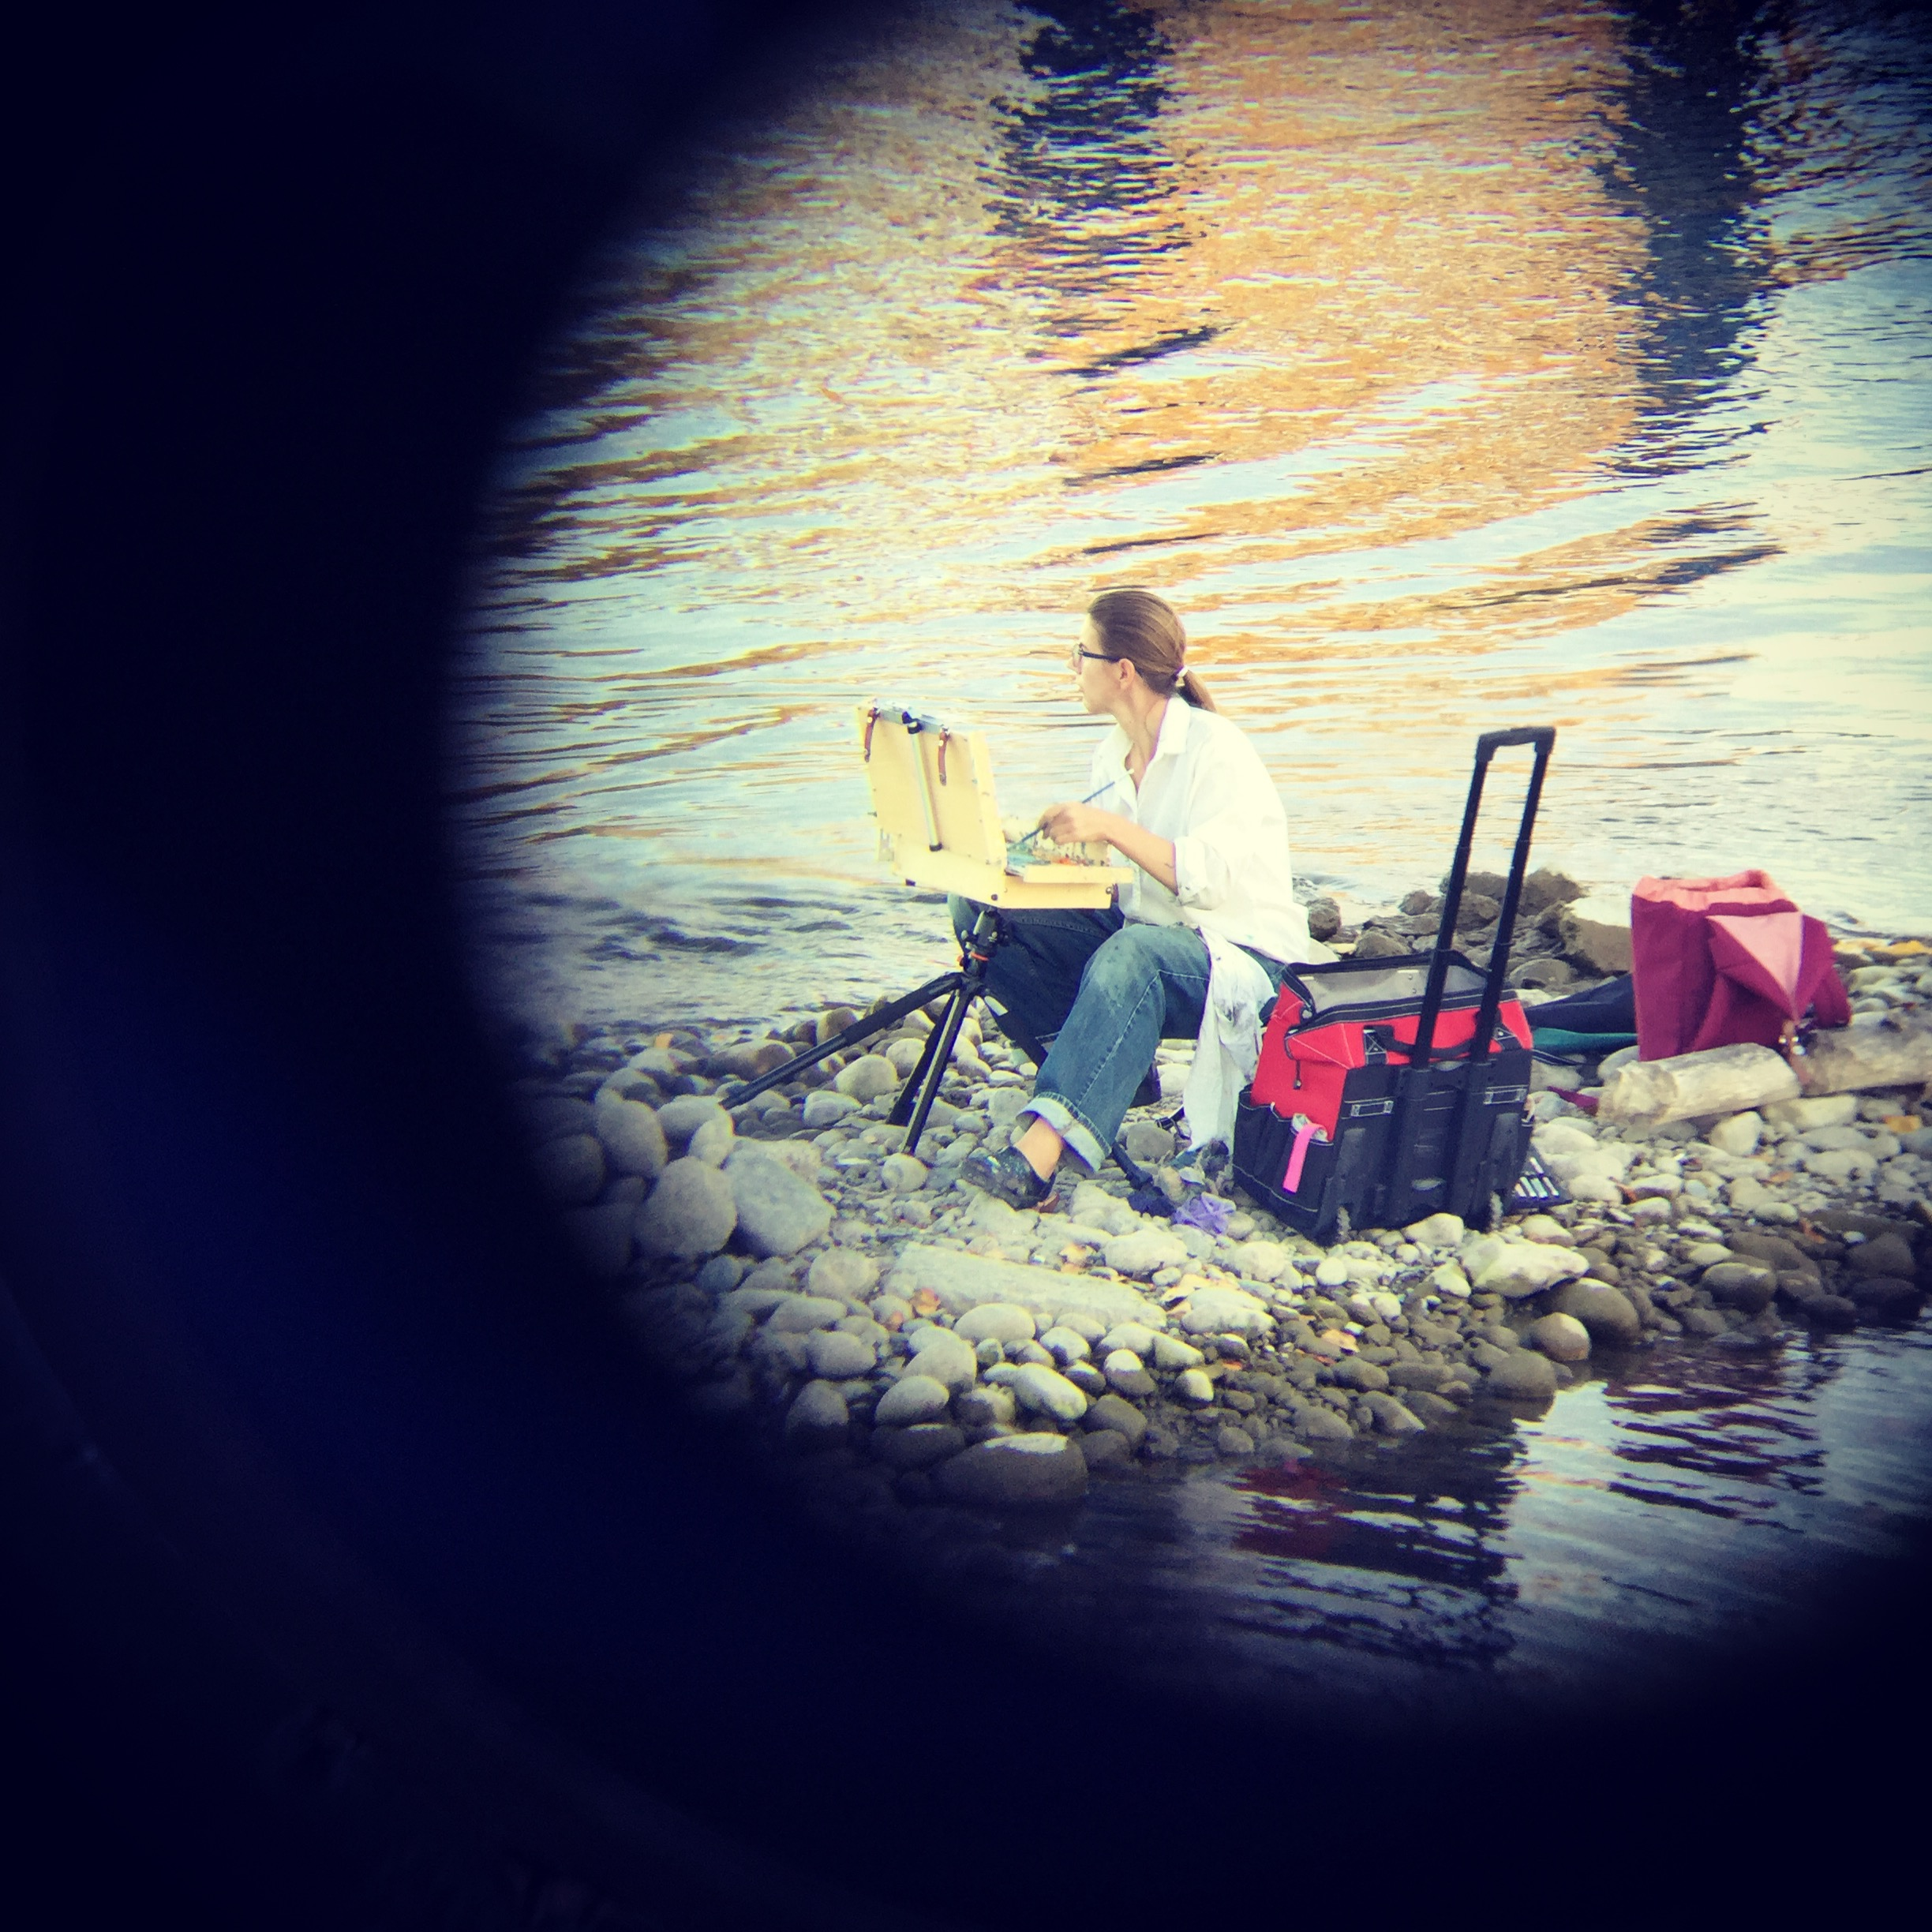 Photo credit: Eric Moschopedis (cleverly shot through his binoculars unbeknownst to me).